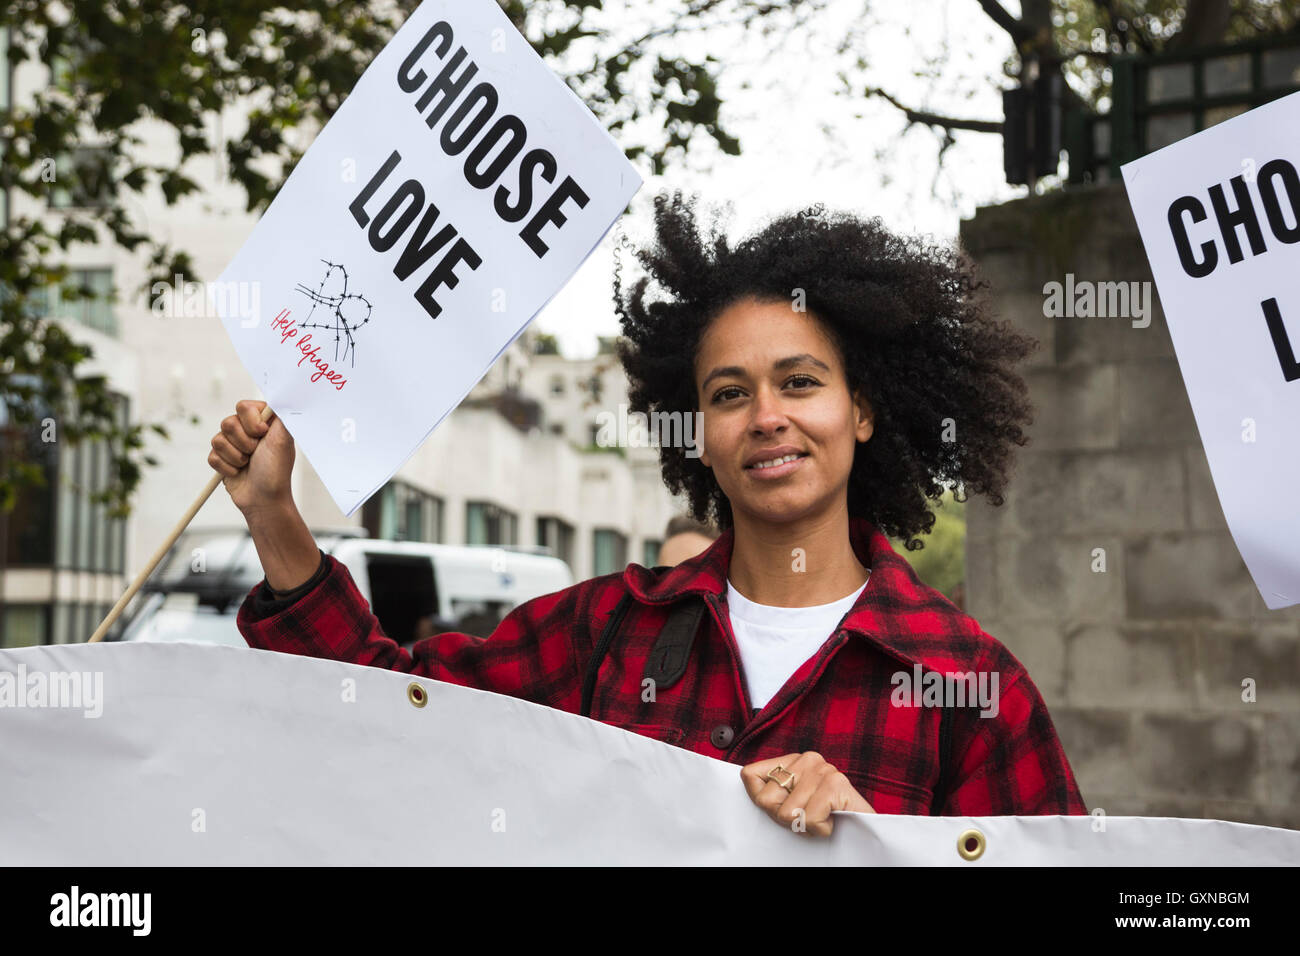 London, UK. 17 September 2016. Thousands of people take to the streets in a Refugees Welcome march in Central London - Stock Image